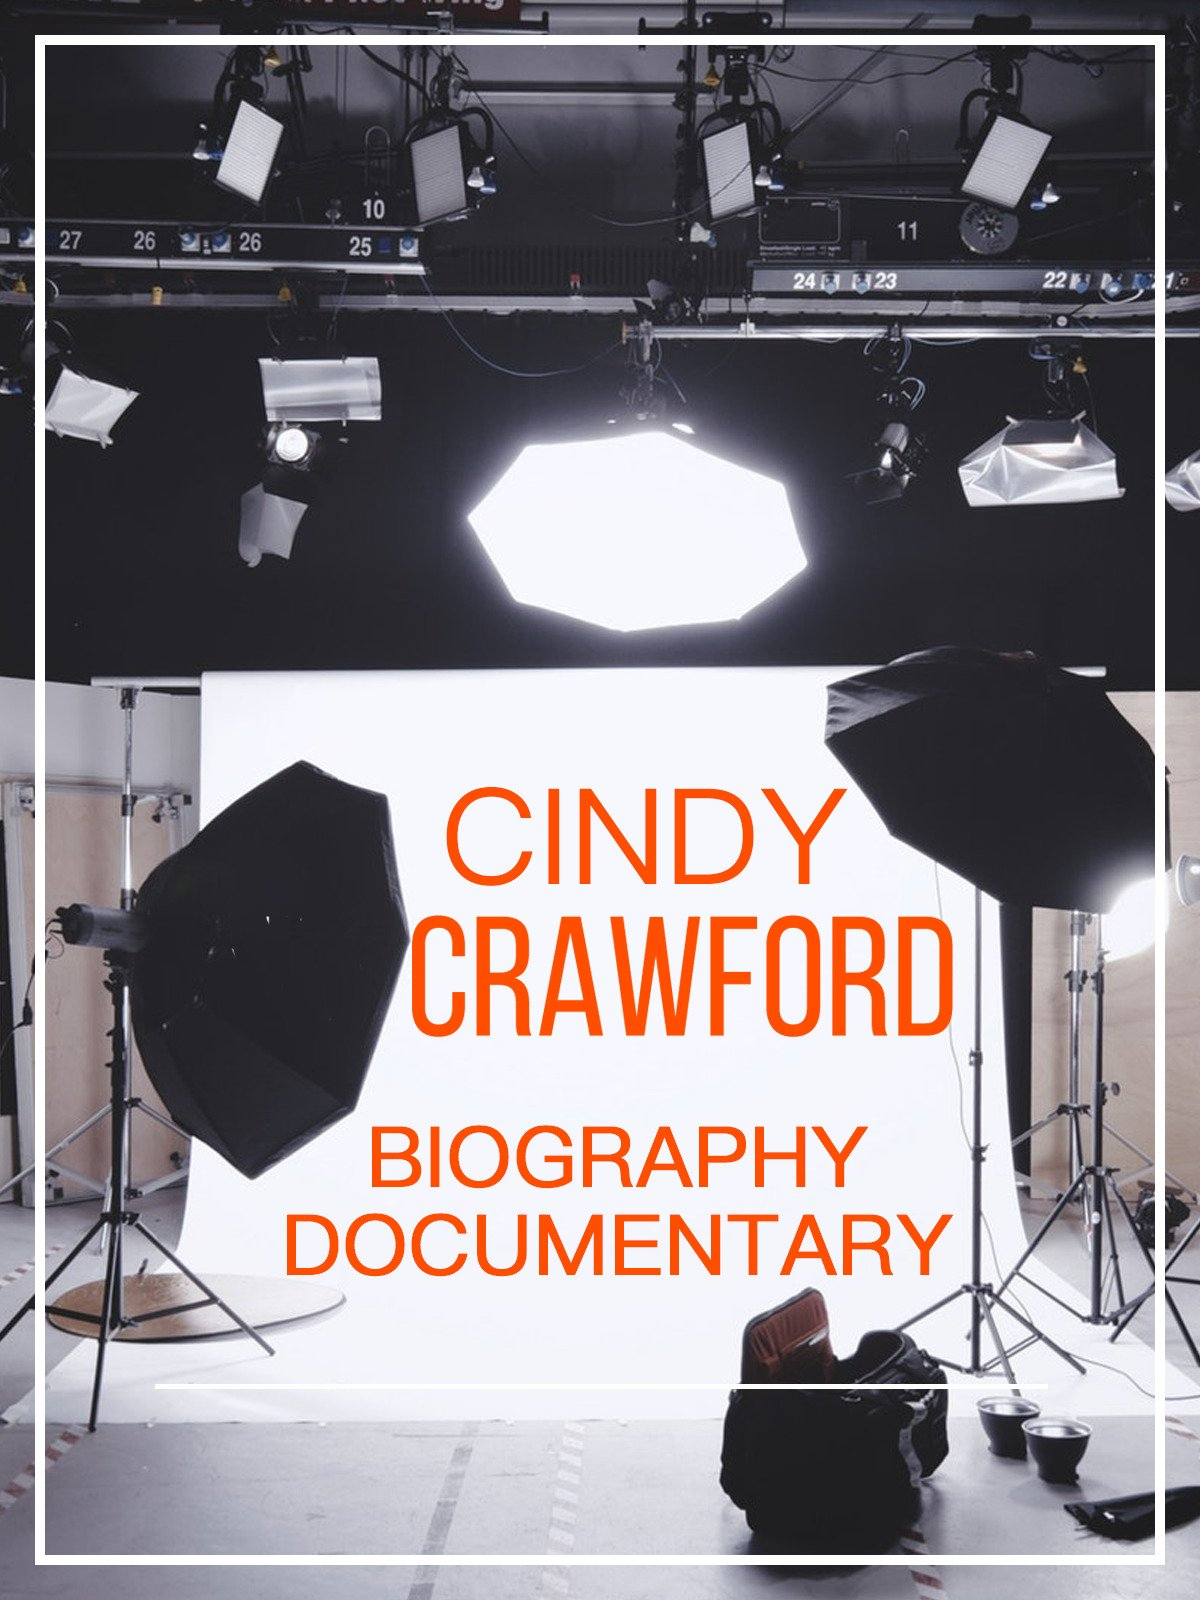 Cindy Crawford: Biography Documentary